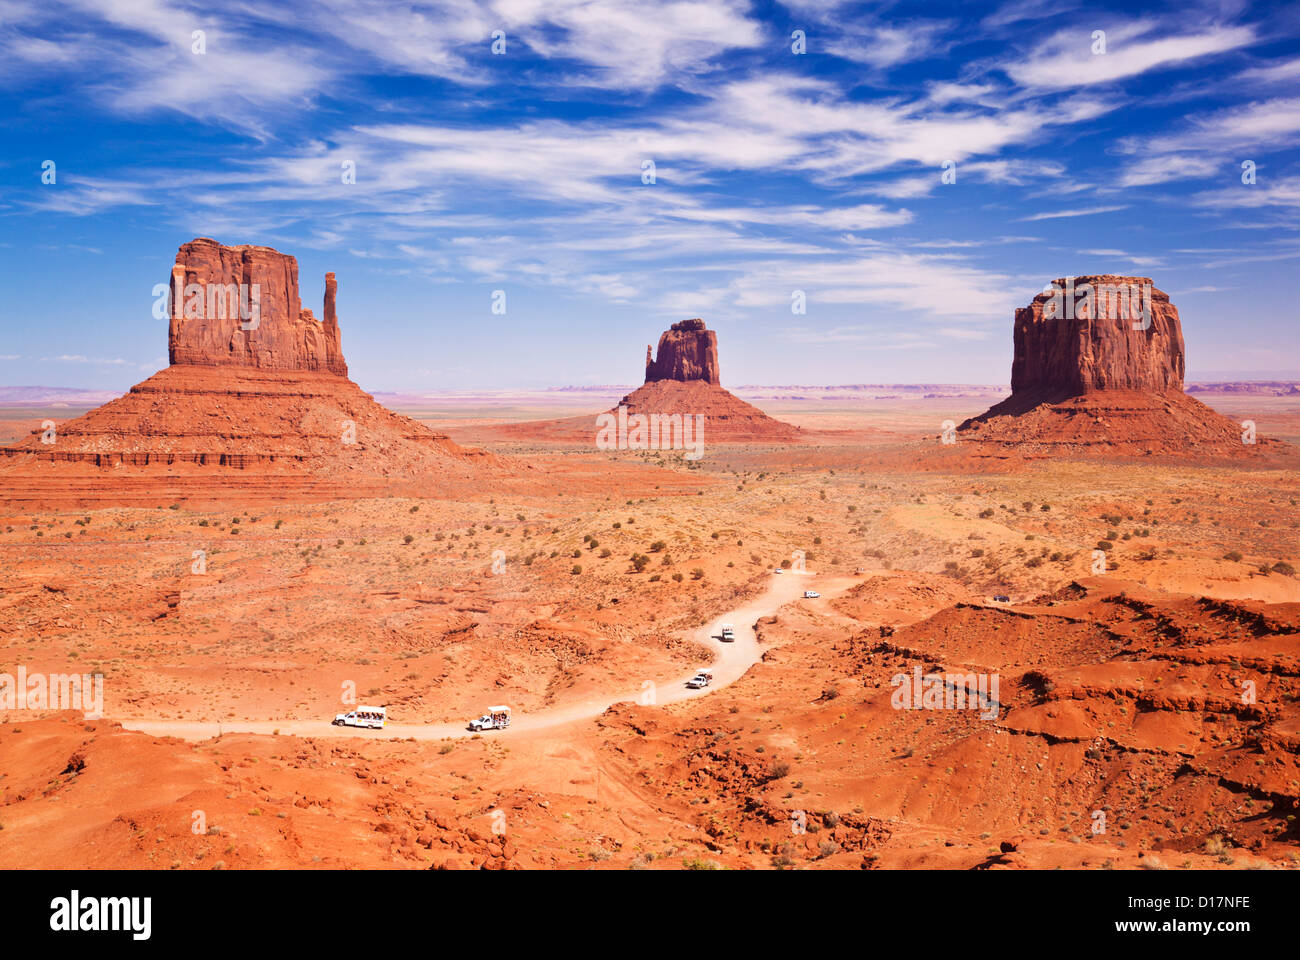 West Mitten Butte, East Mitten Butte and Merrick Butte, The Mittens Jeep Tours Monument Valley Navajo Tribal Park, - Stock Image